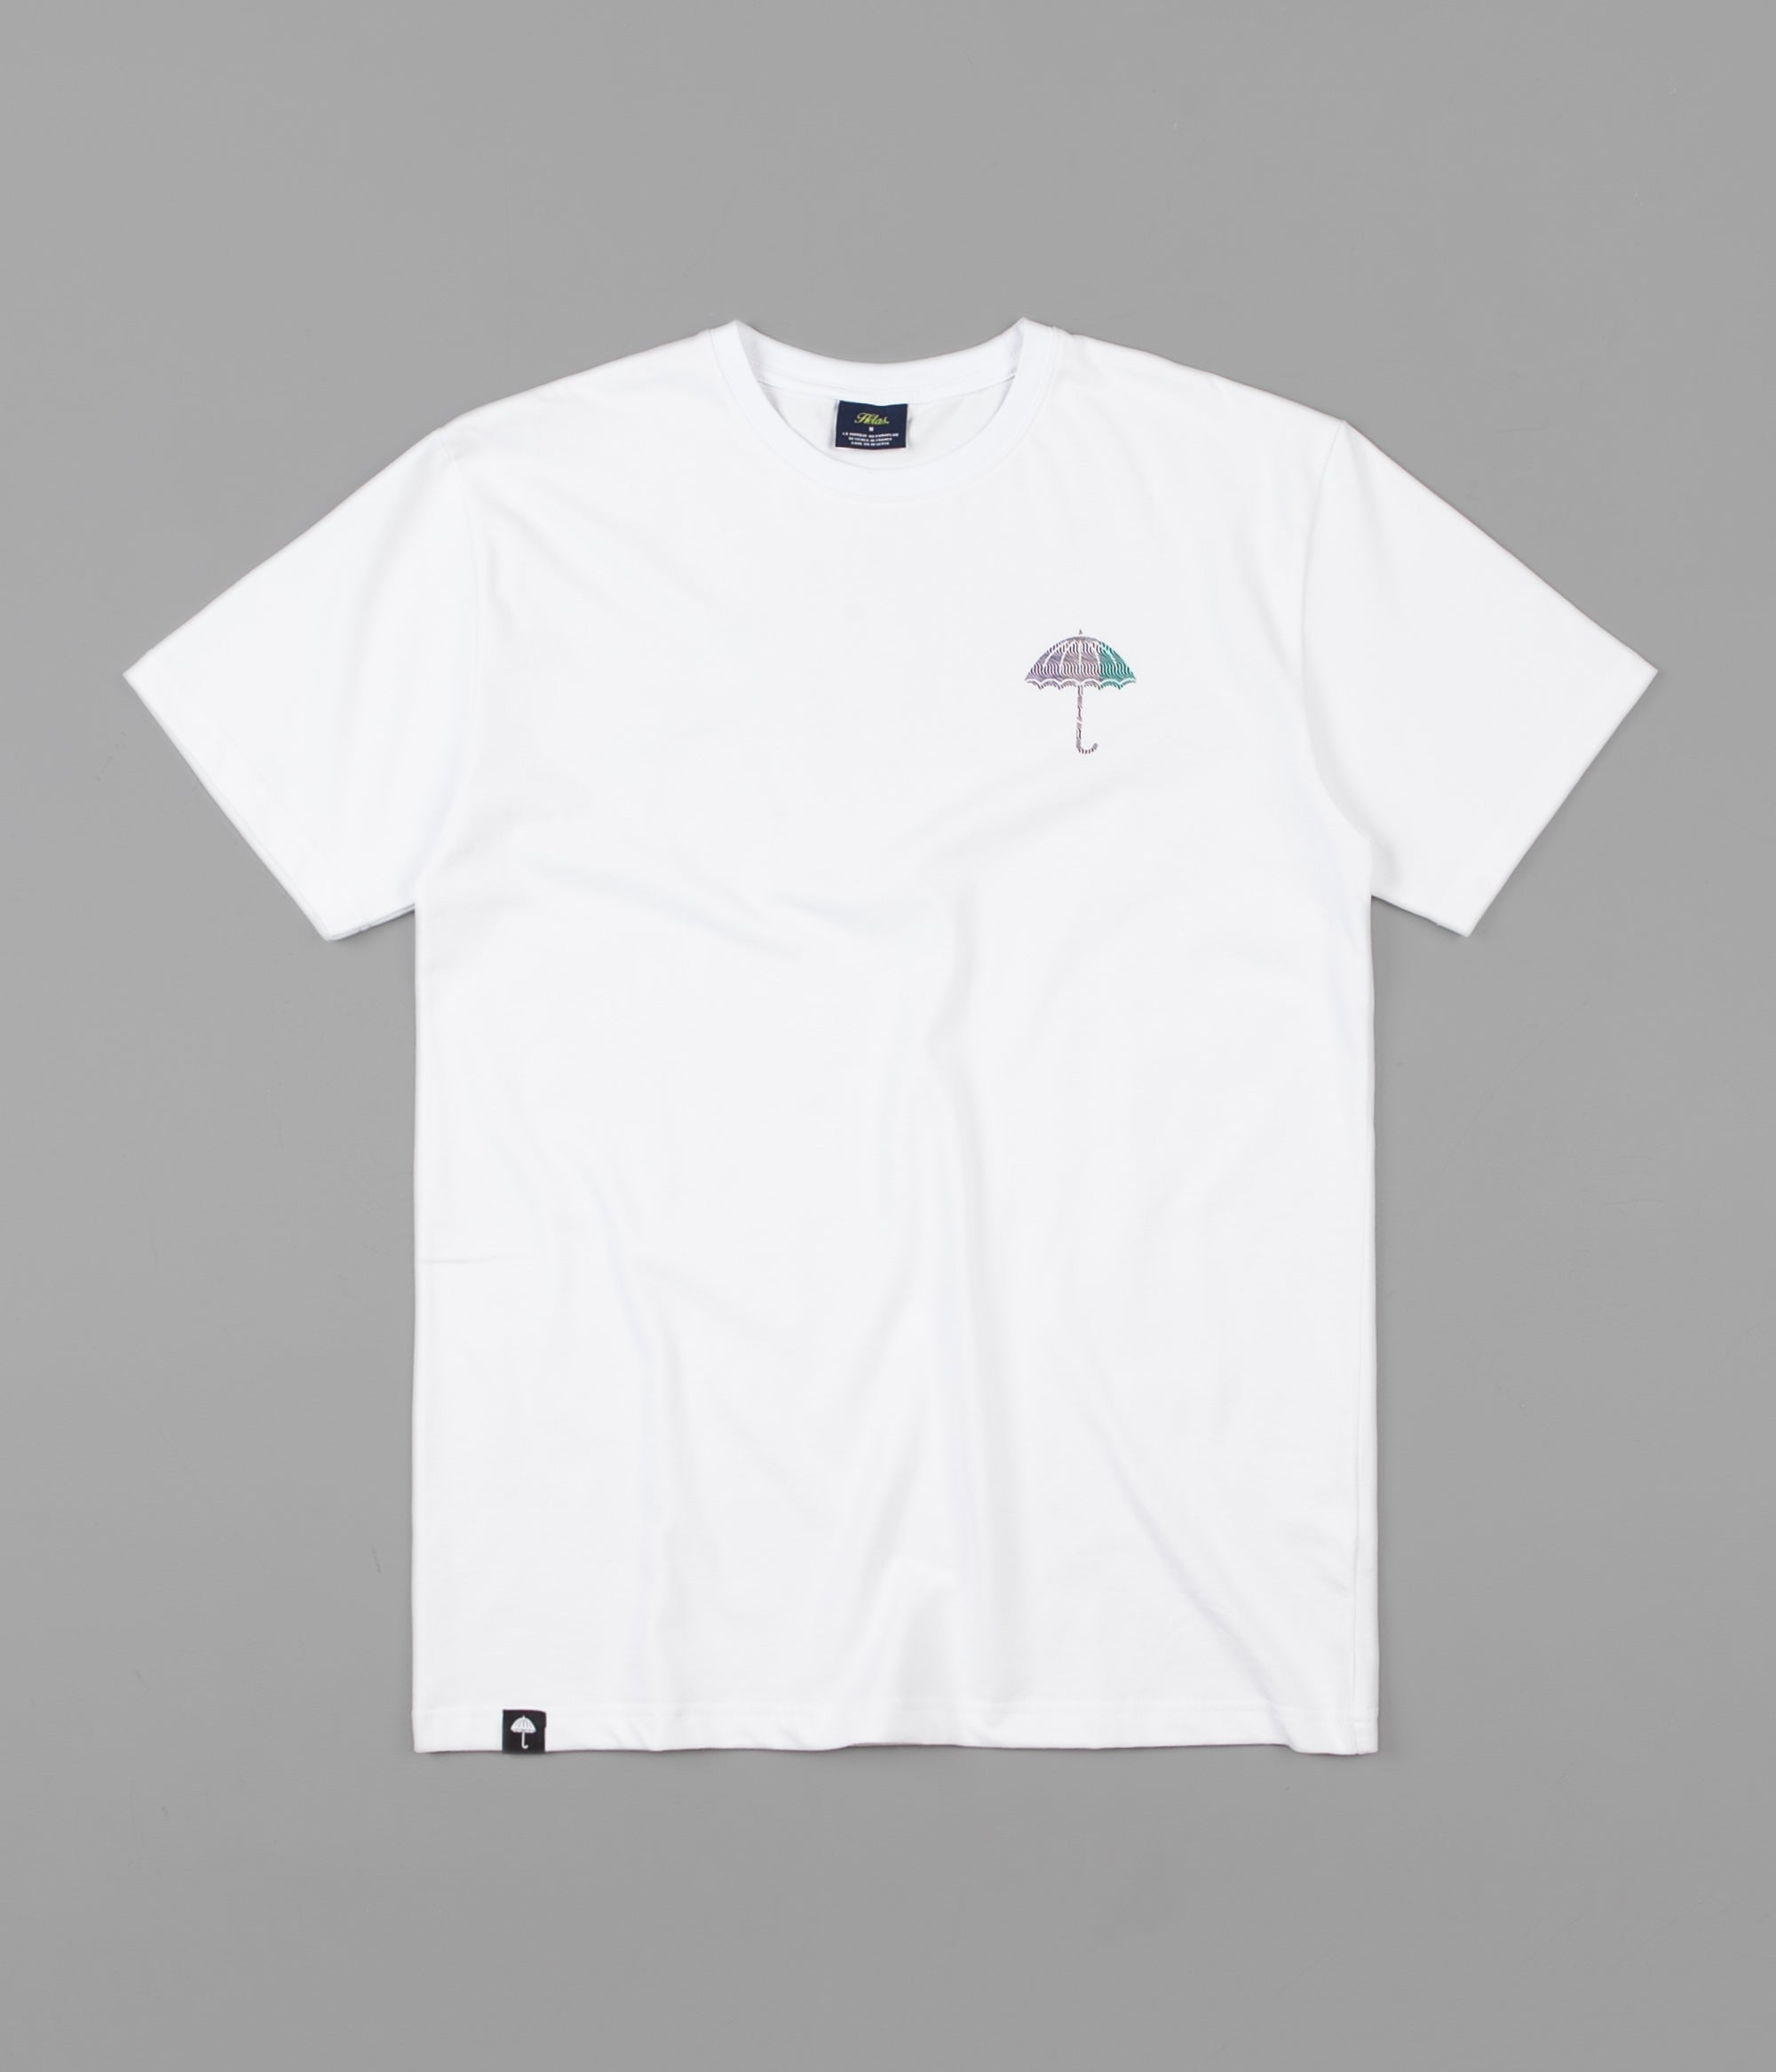 Helas Good Dose T-Shirt - White